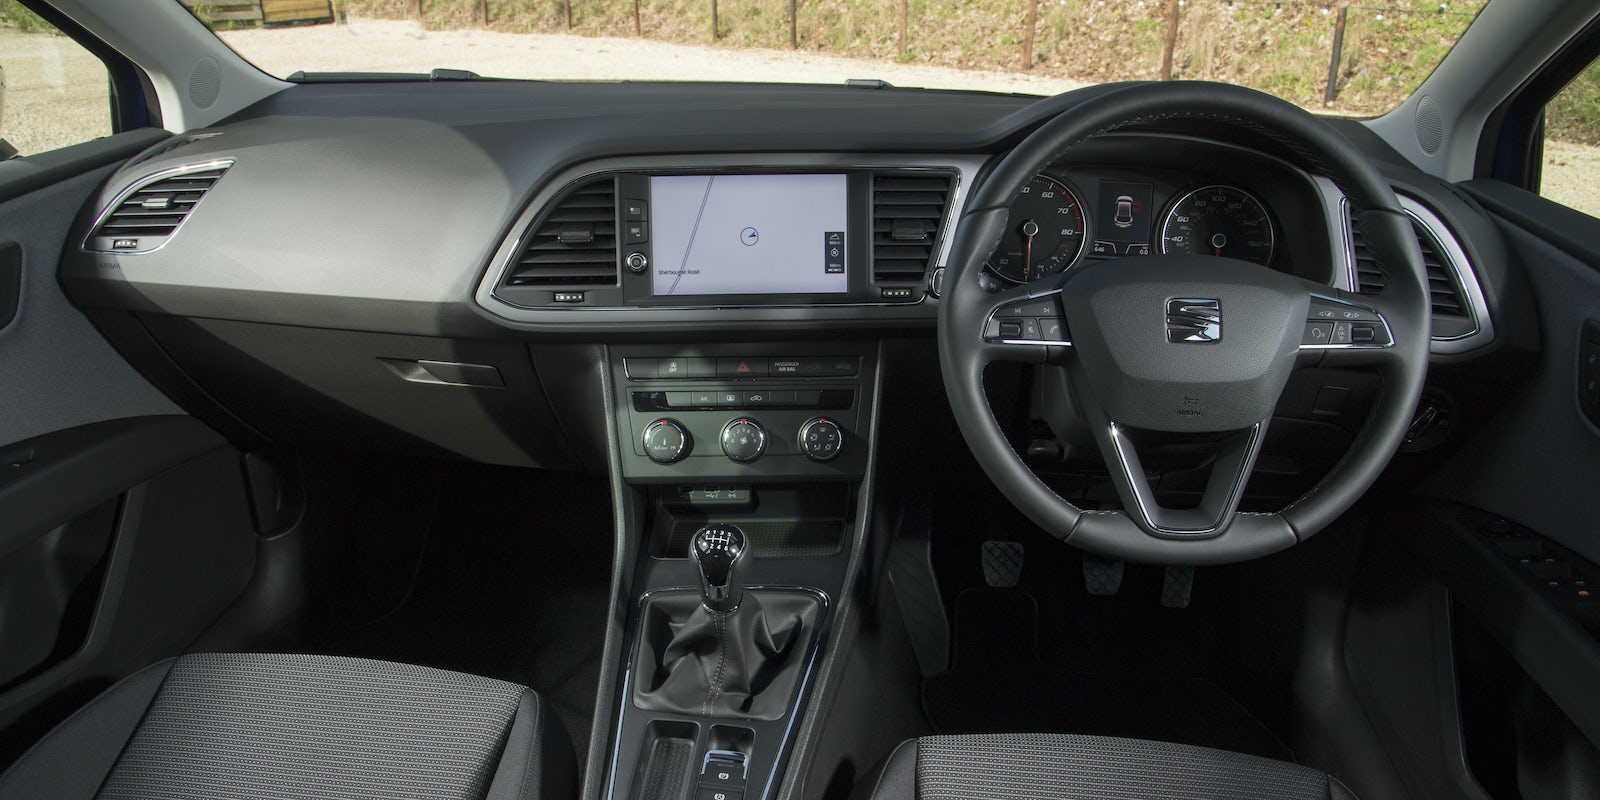 SEAT Leon interior and infotainment | carwow